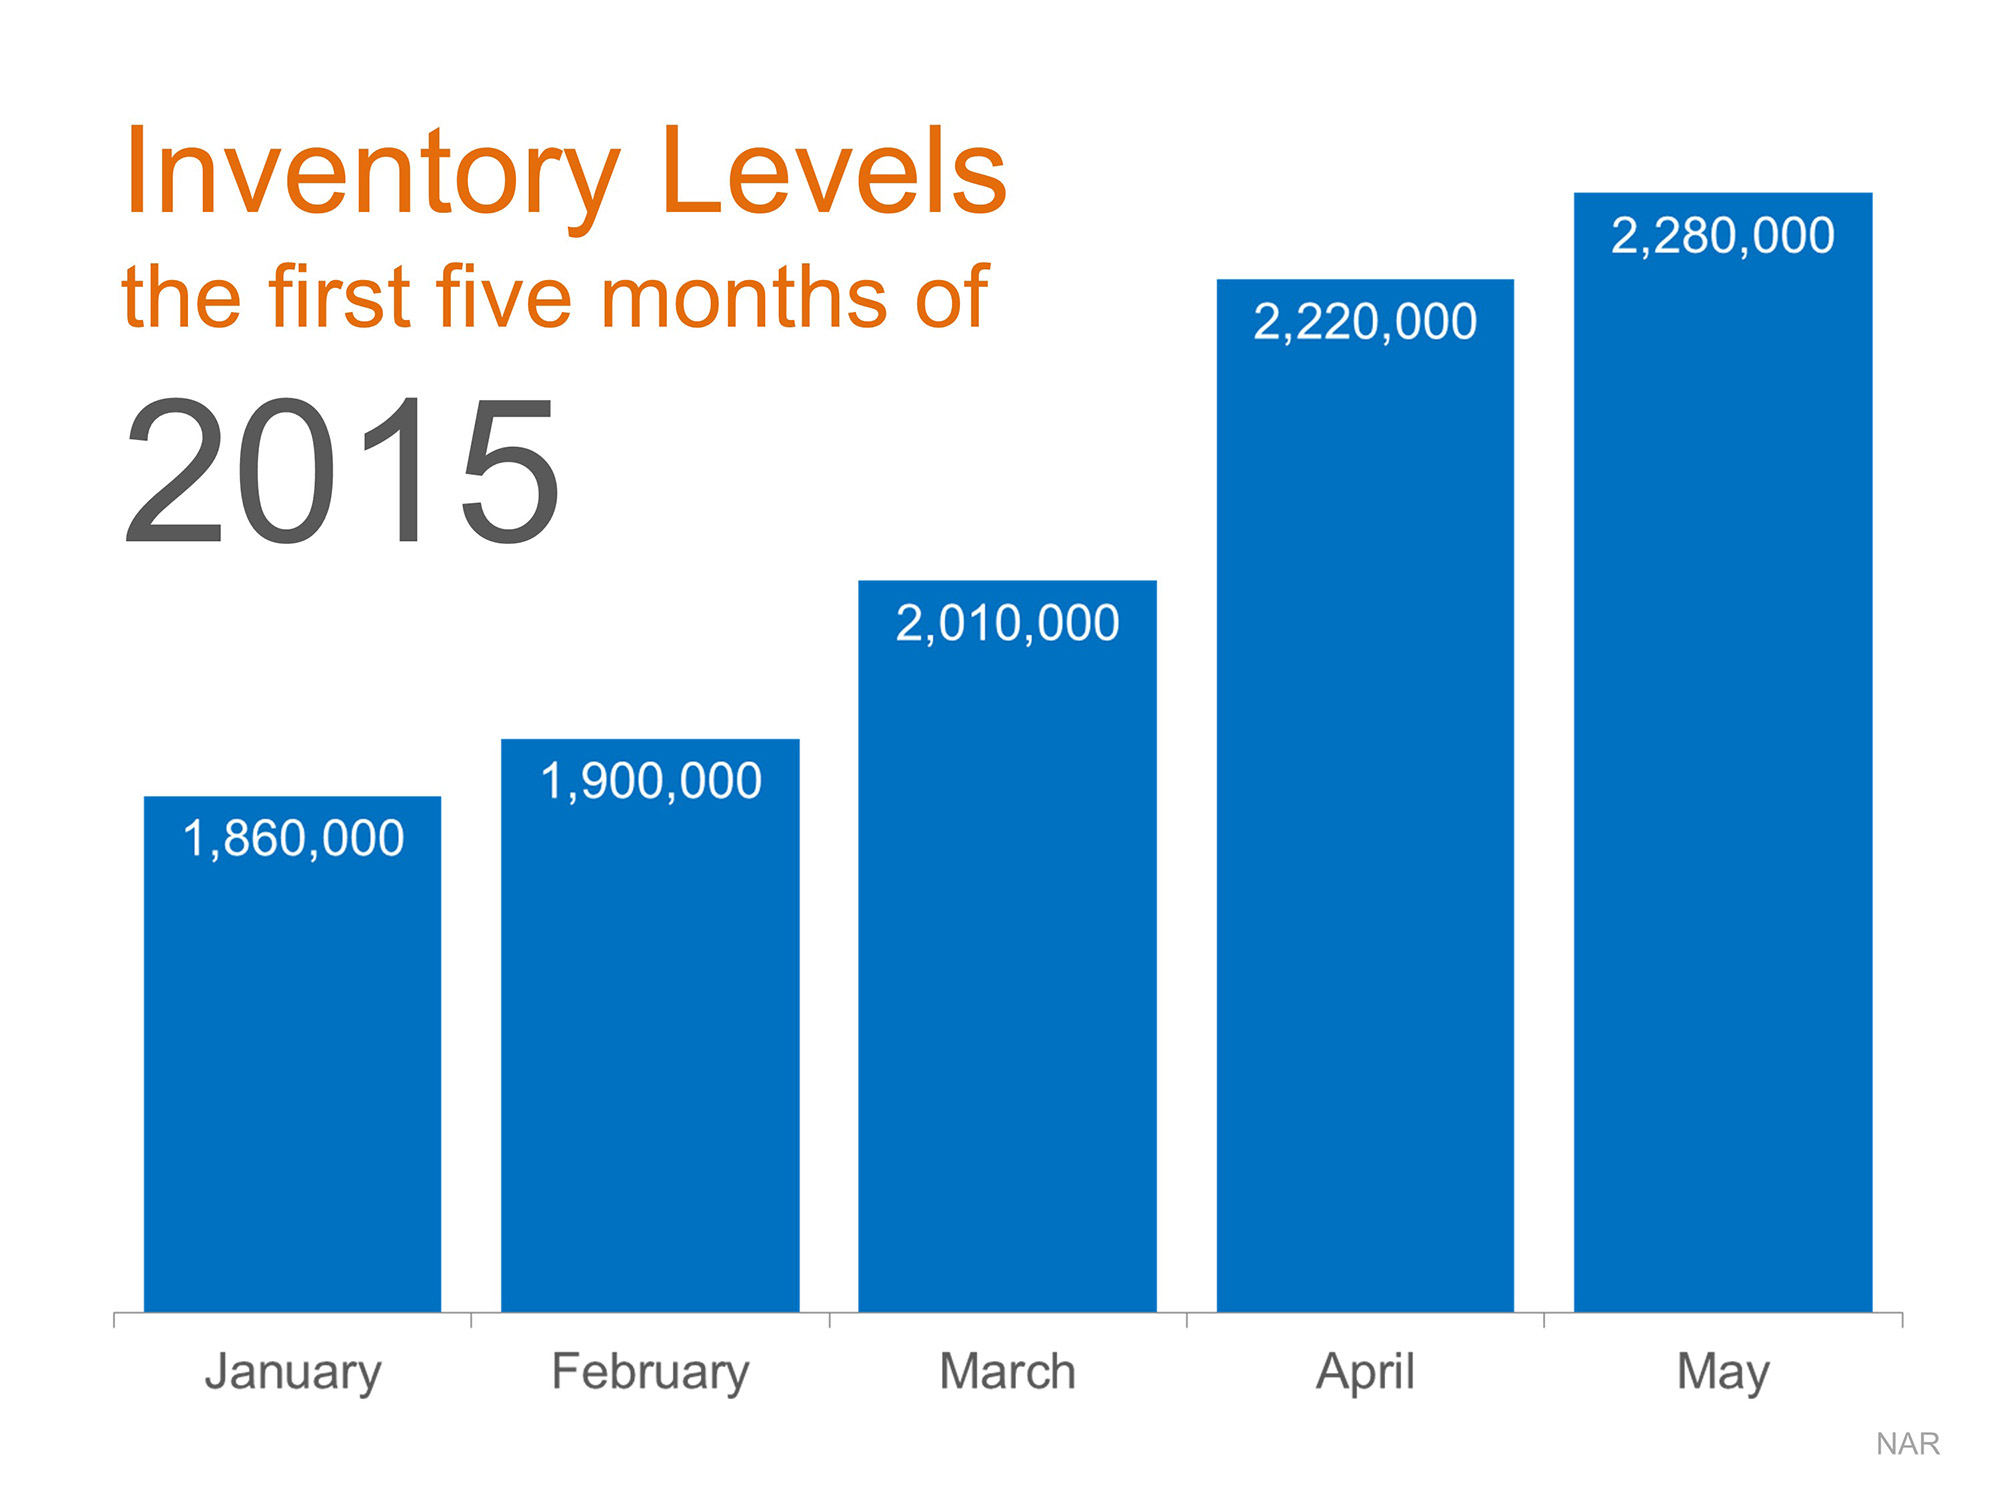 inventory levels or first 5 months